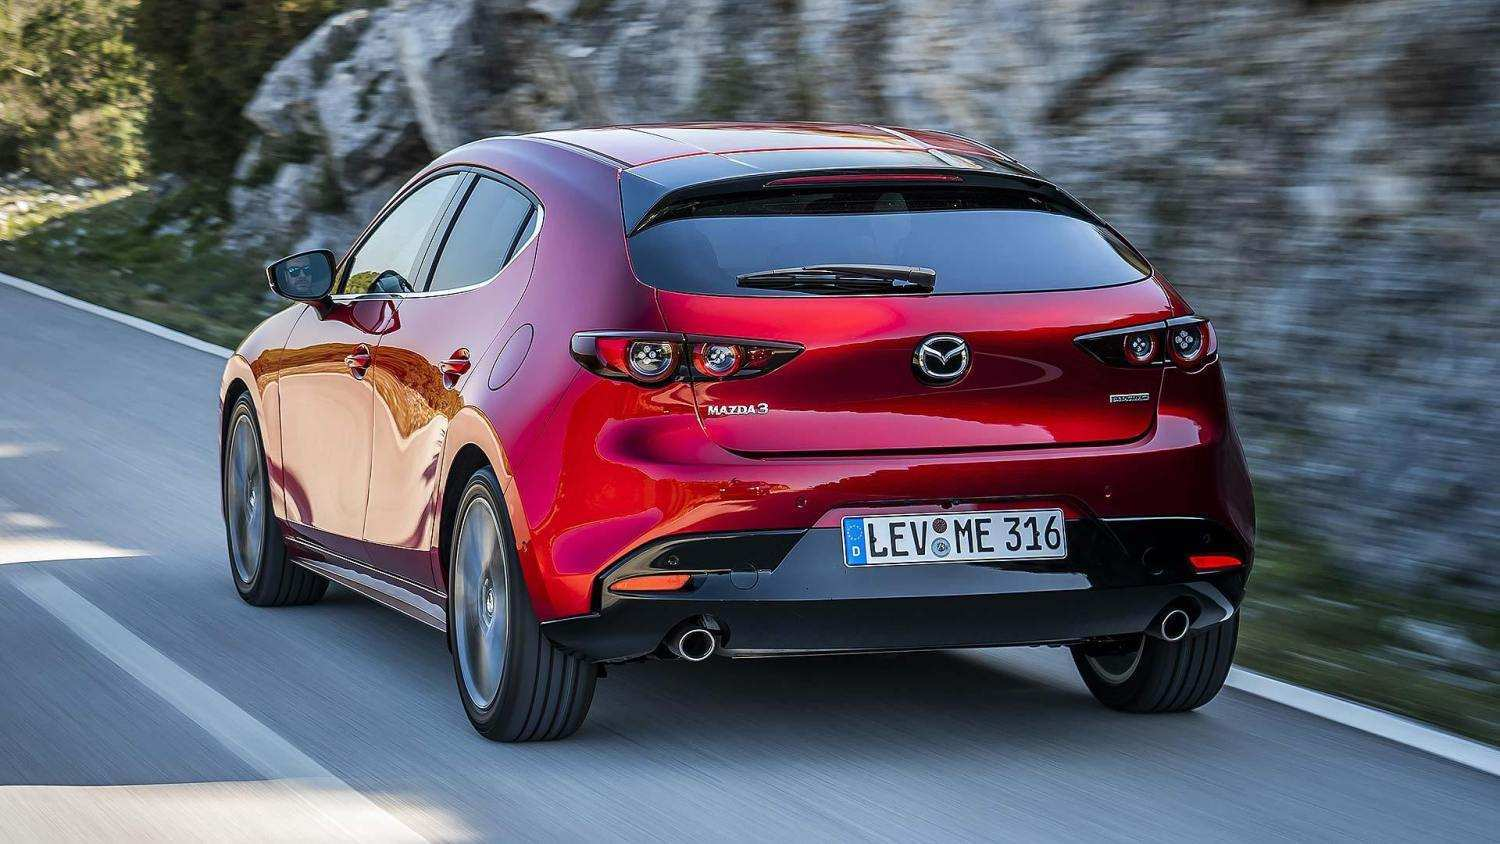 68 The Best 2019 Mazdaspeed 3 Redesign